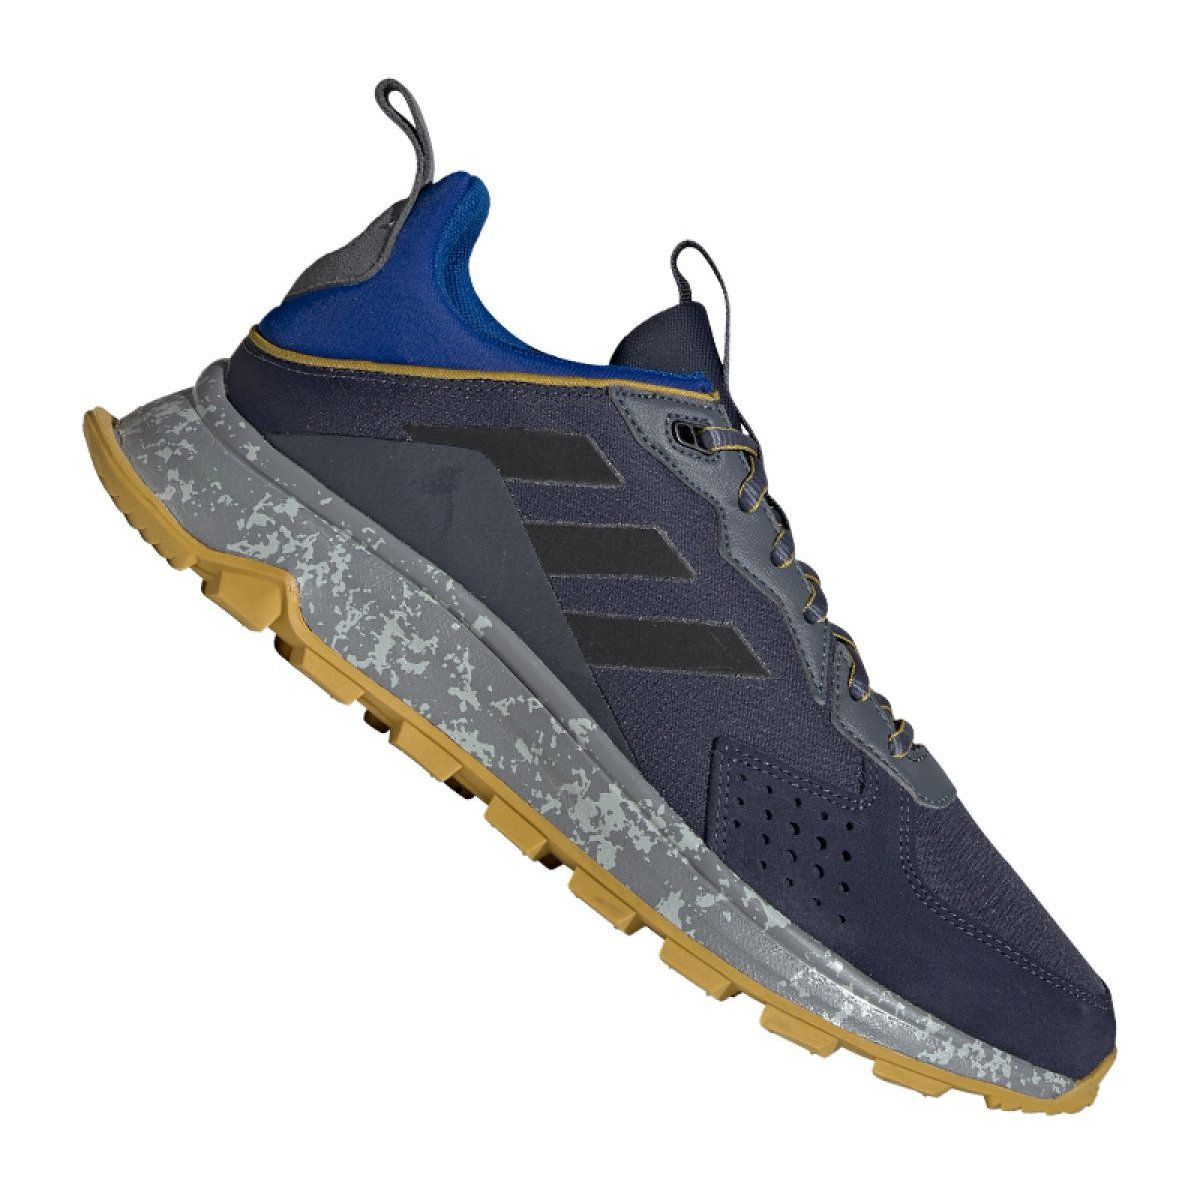 Running Shoes Adidas Resopnse Trail M Ee9829 Navy Multicolored Adidas Running Shoes Running Shoes Adidas Shoes